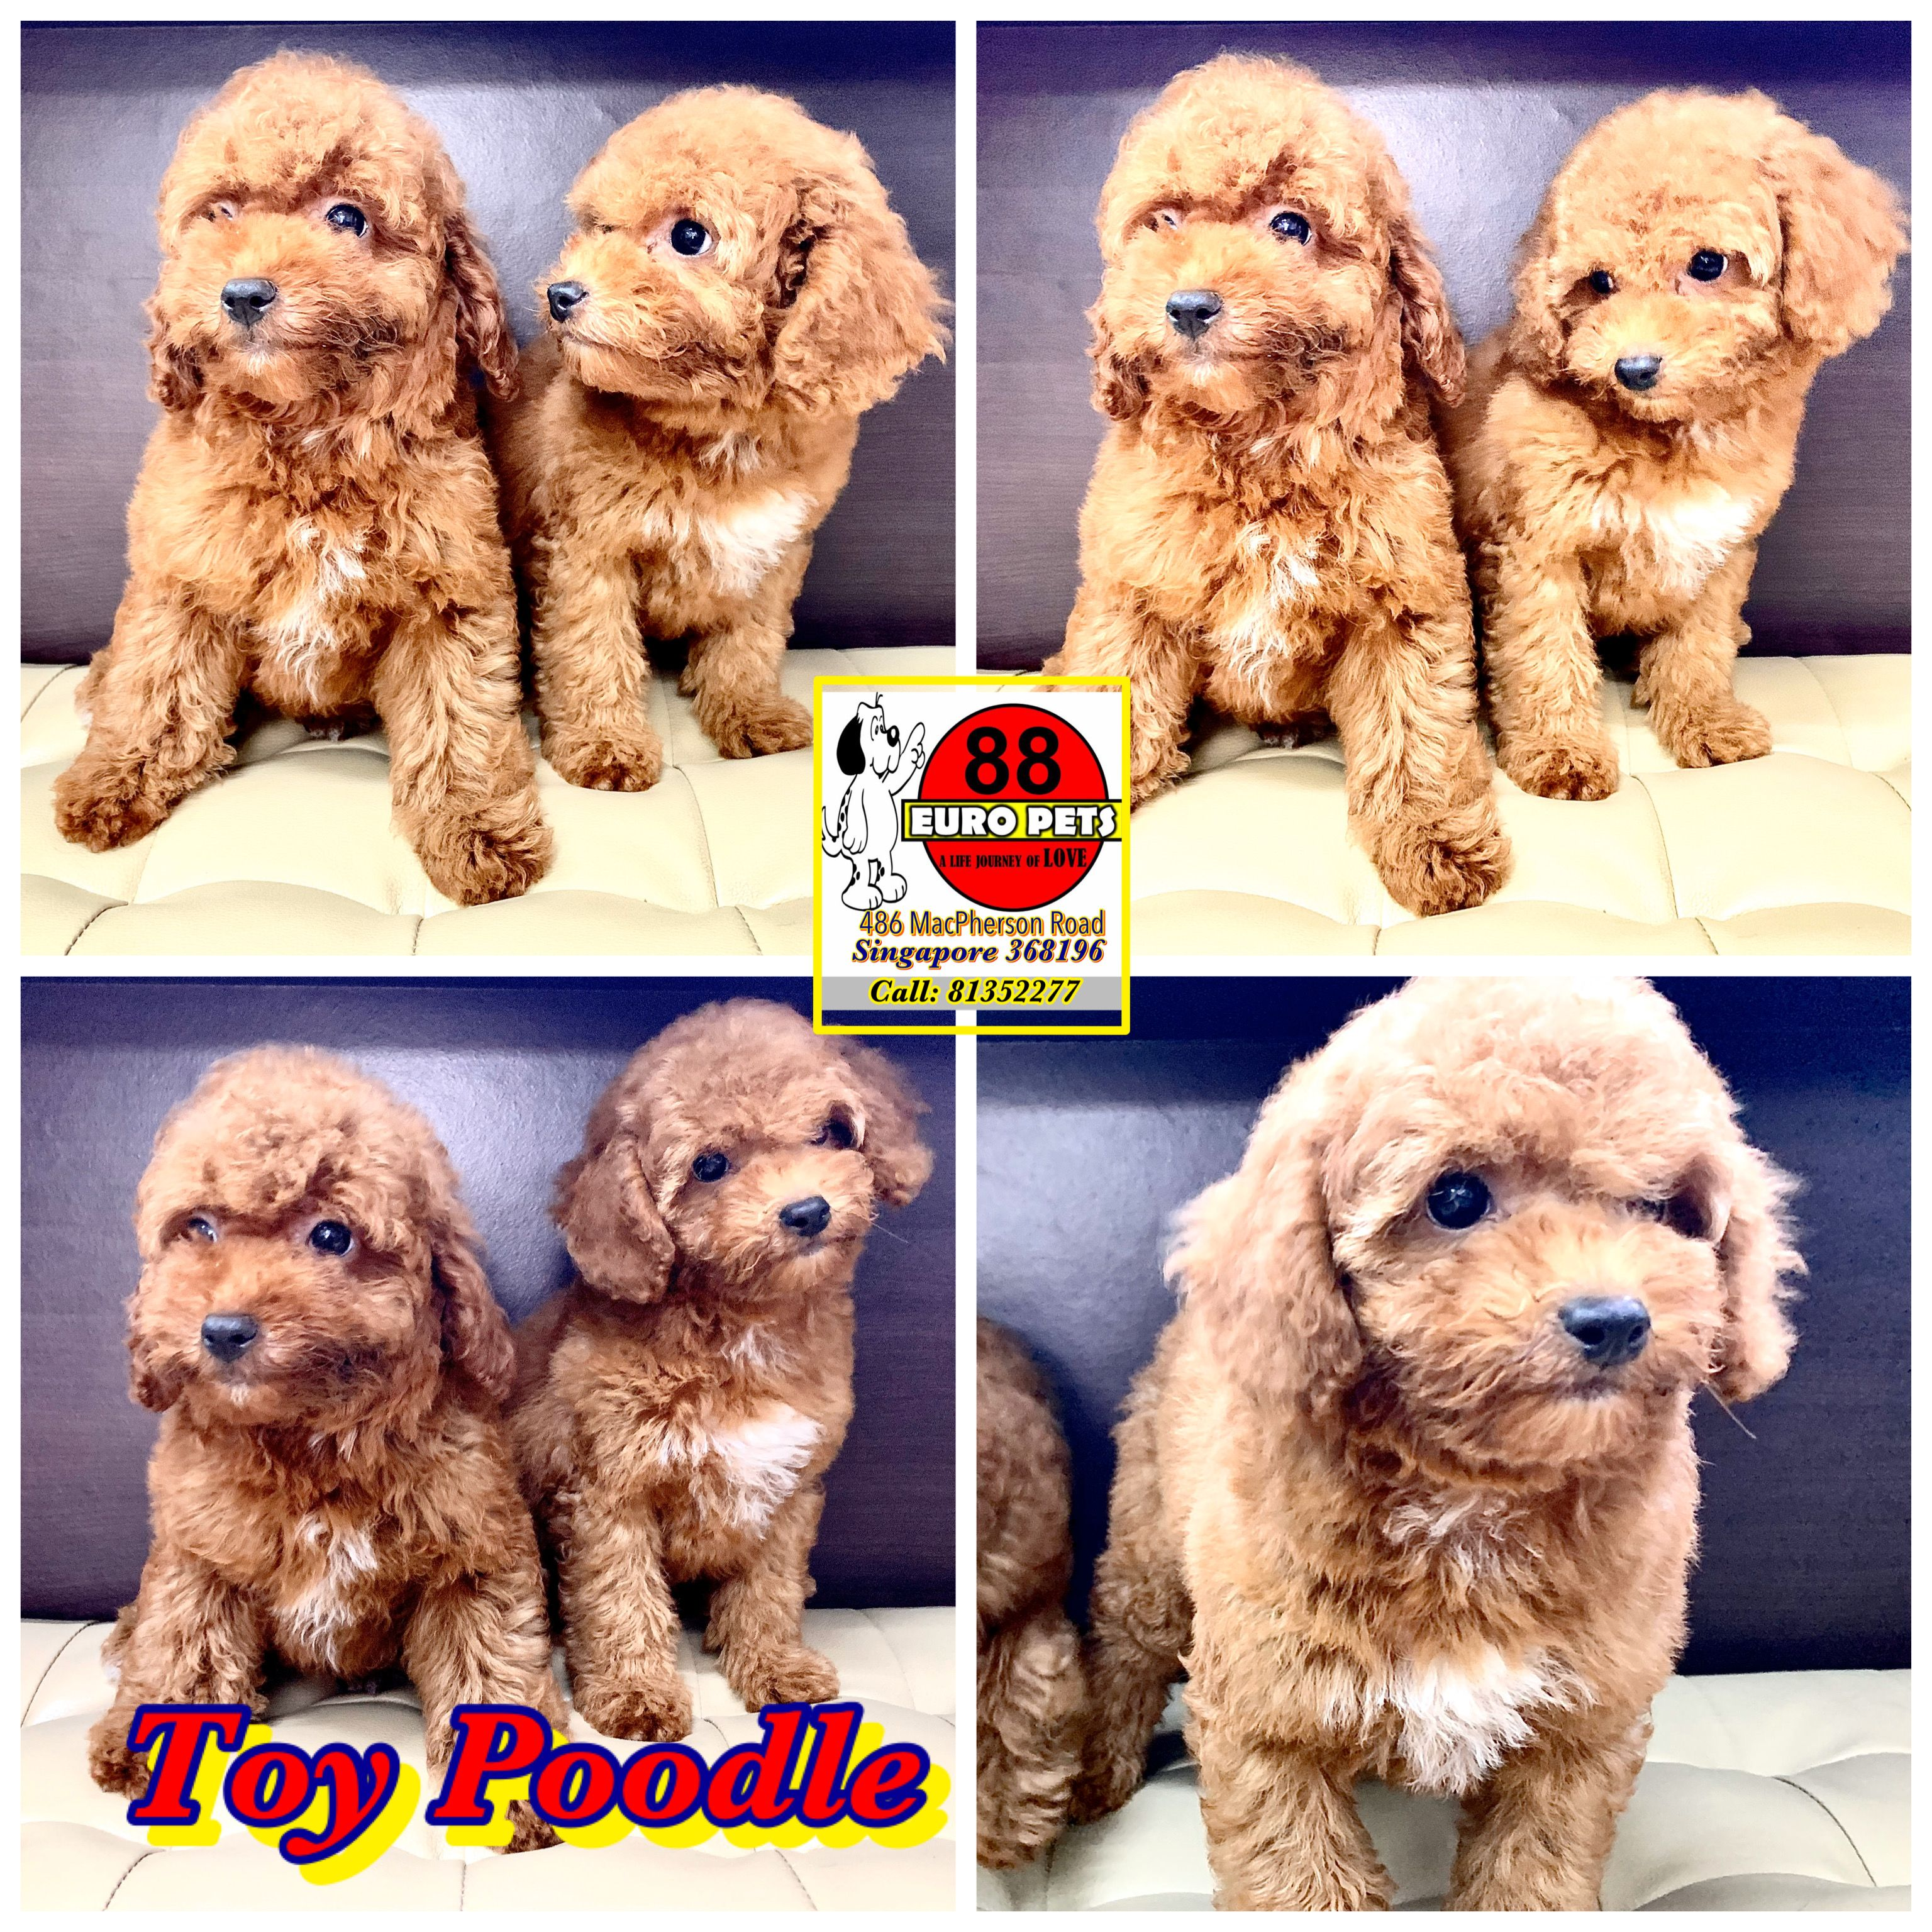 Toy Poodle Puppies For Sale Harrods Teddy Bear Poodle Puppies For Sale Toy Poodle Puppies Toy Poodles For Sale